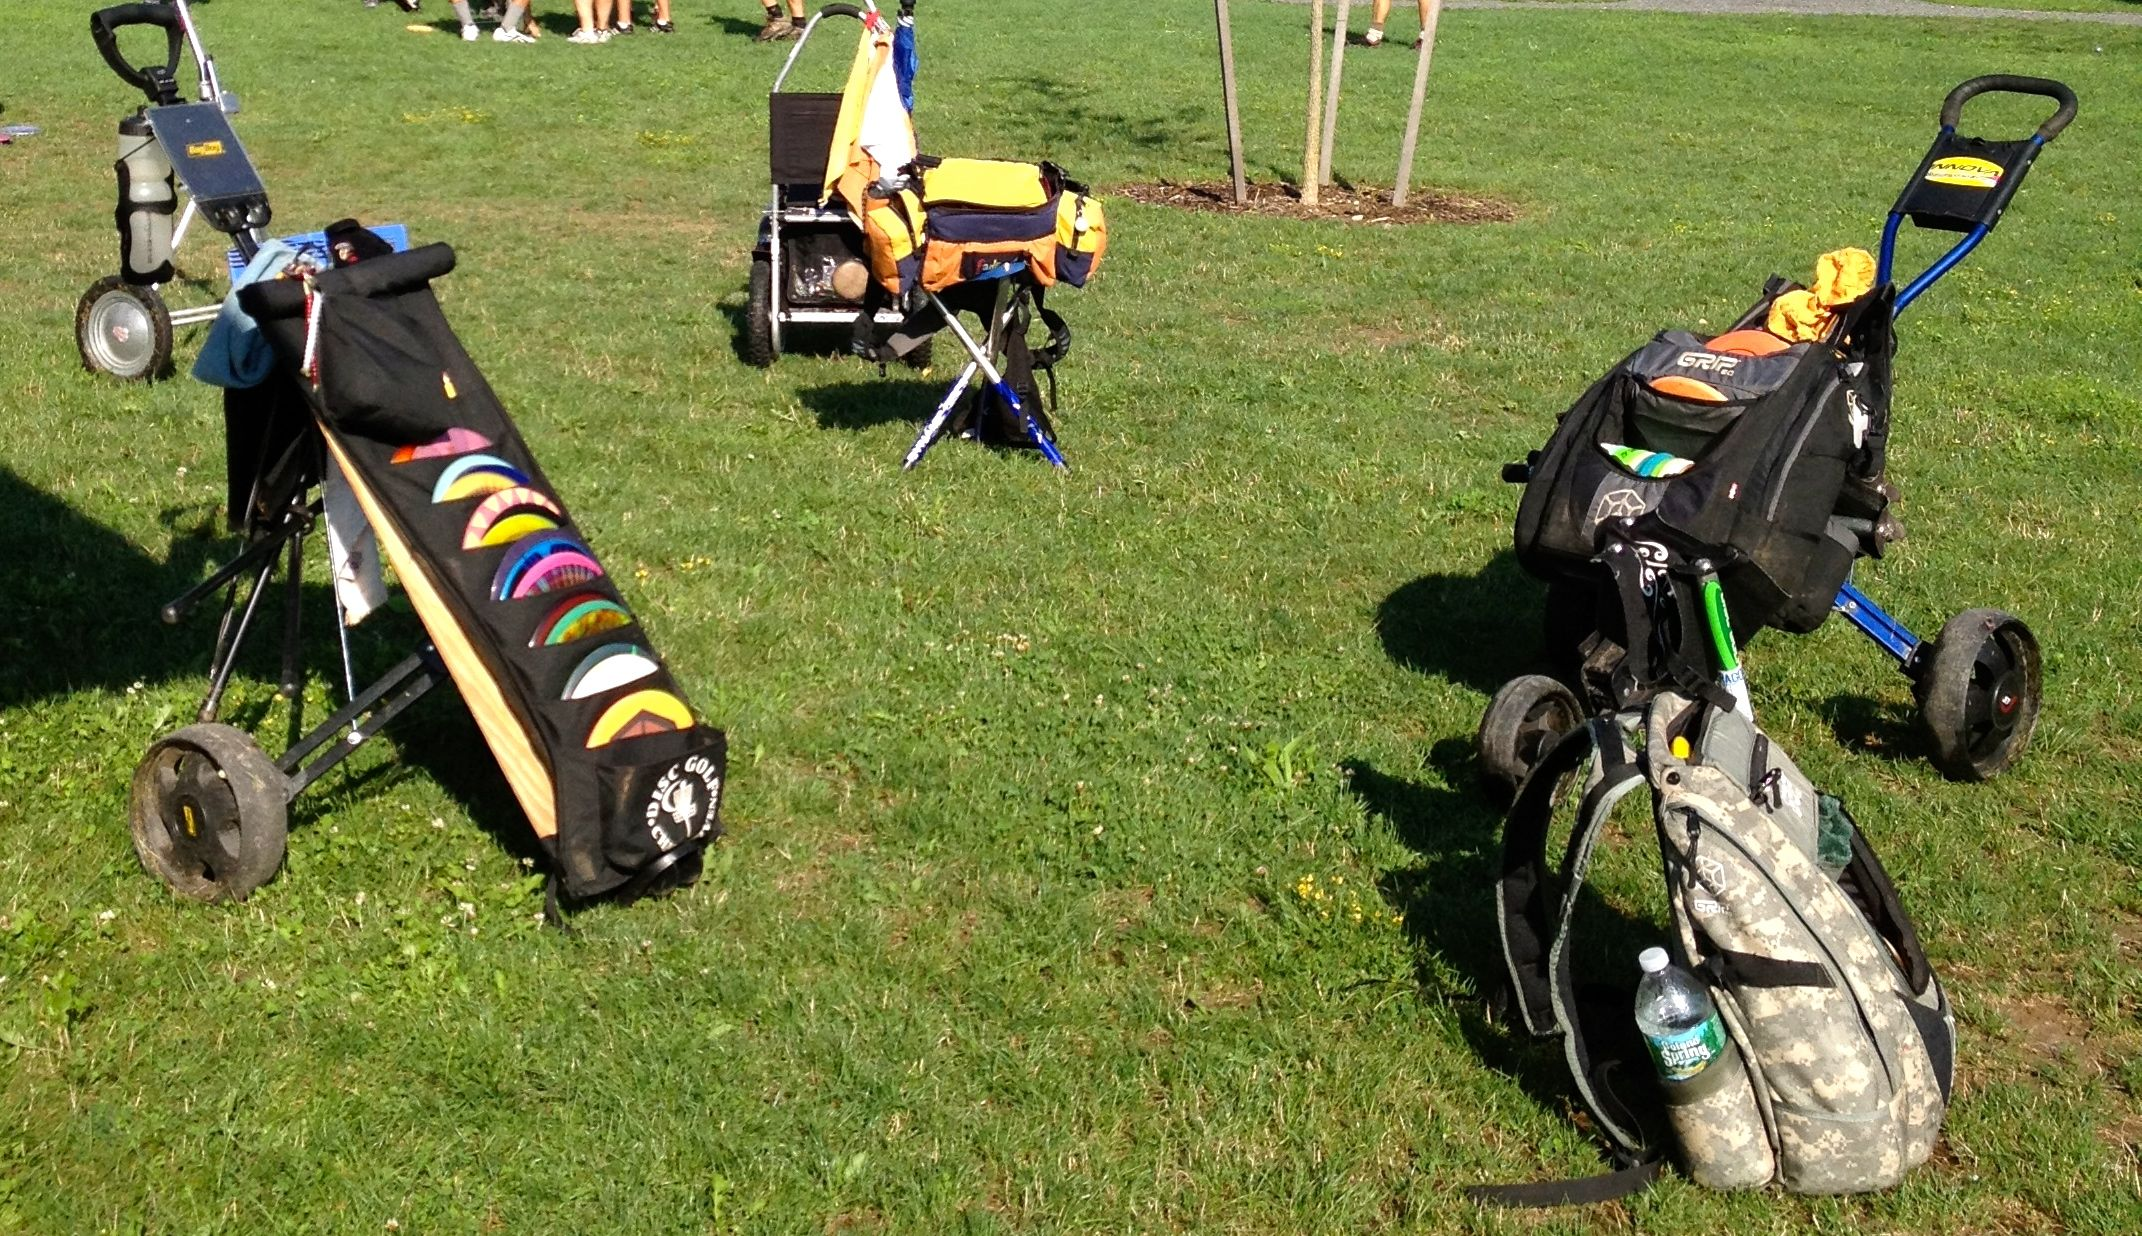 portable chairs for golf tournaments copenhagen dining 2012 rochester 38th annual flying disc open and